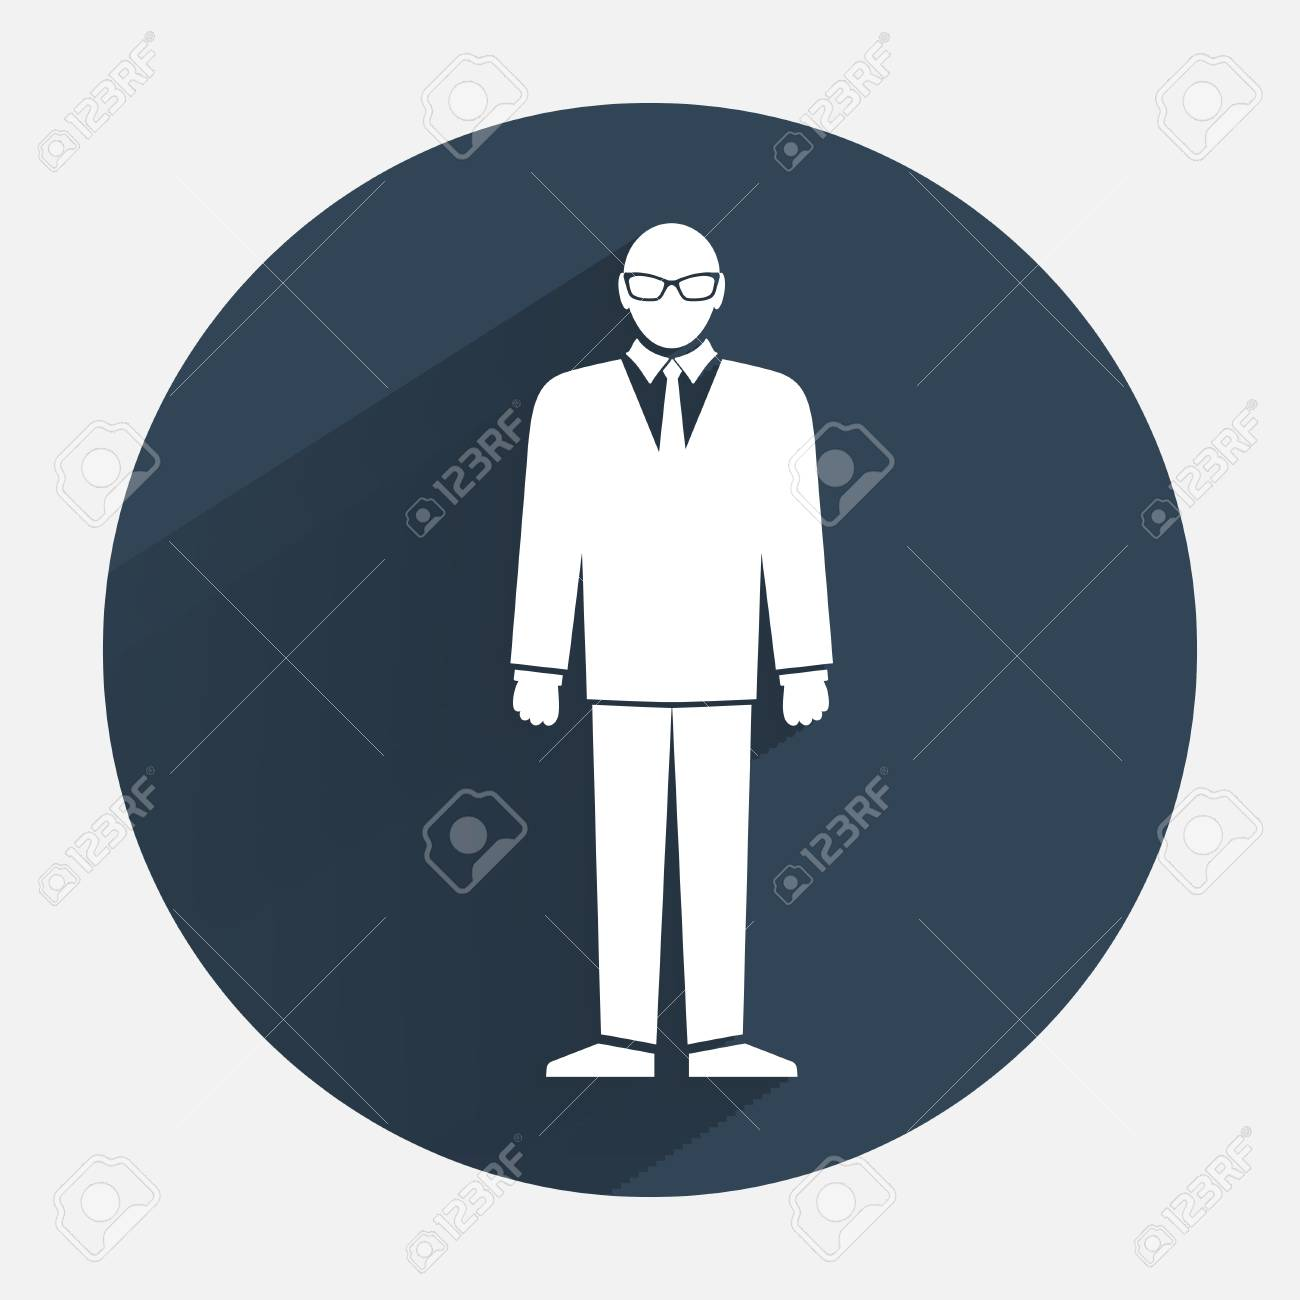 Man icon. Office worker symbol. Standing men in suit with tie..